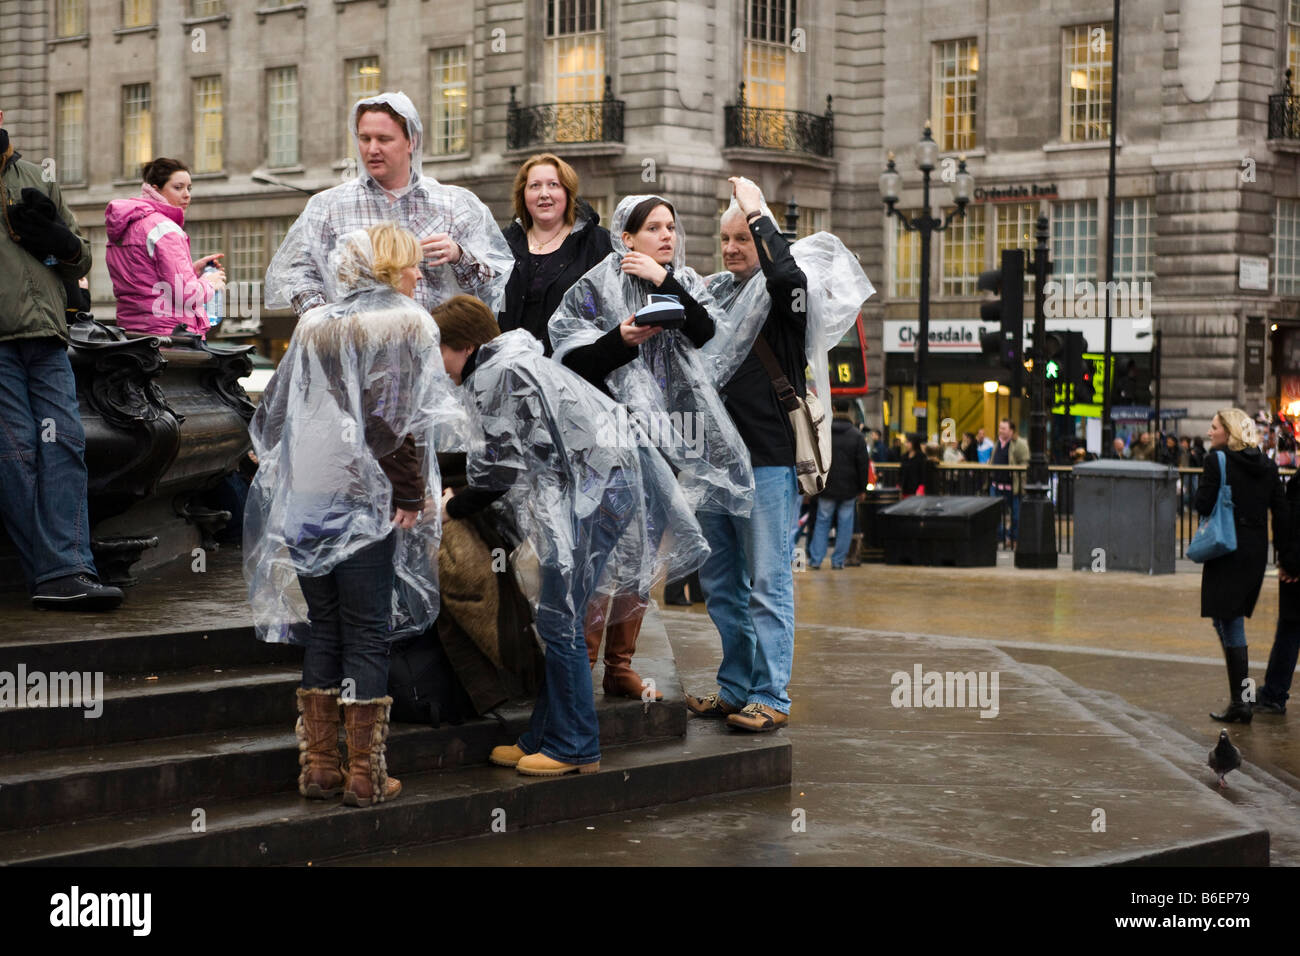 group of tourists in london all wearing the same type of rain coat - Stock Image